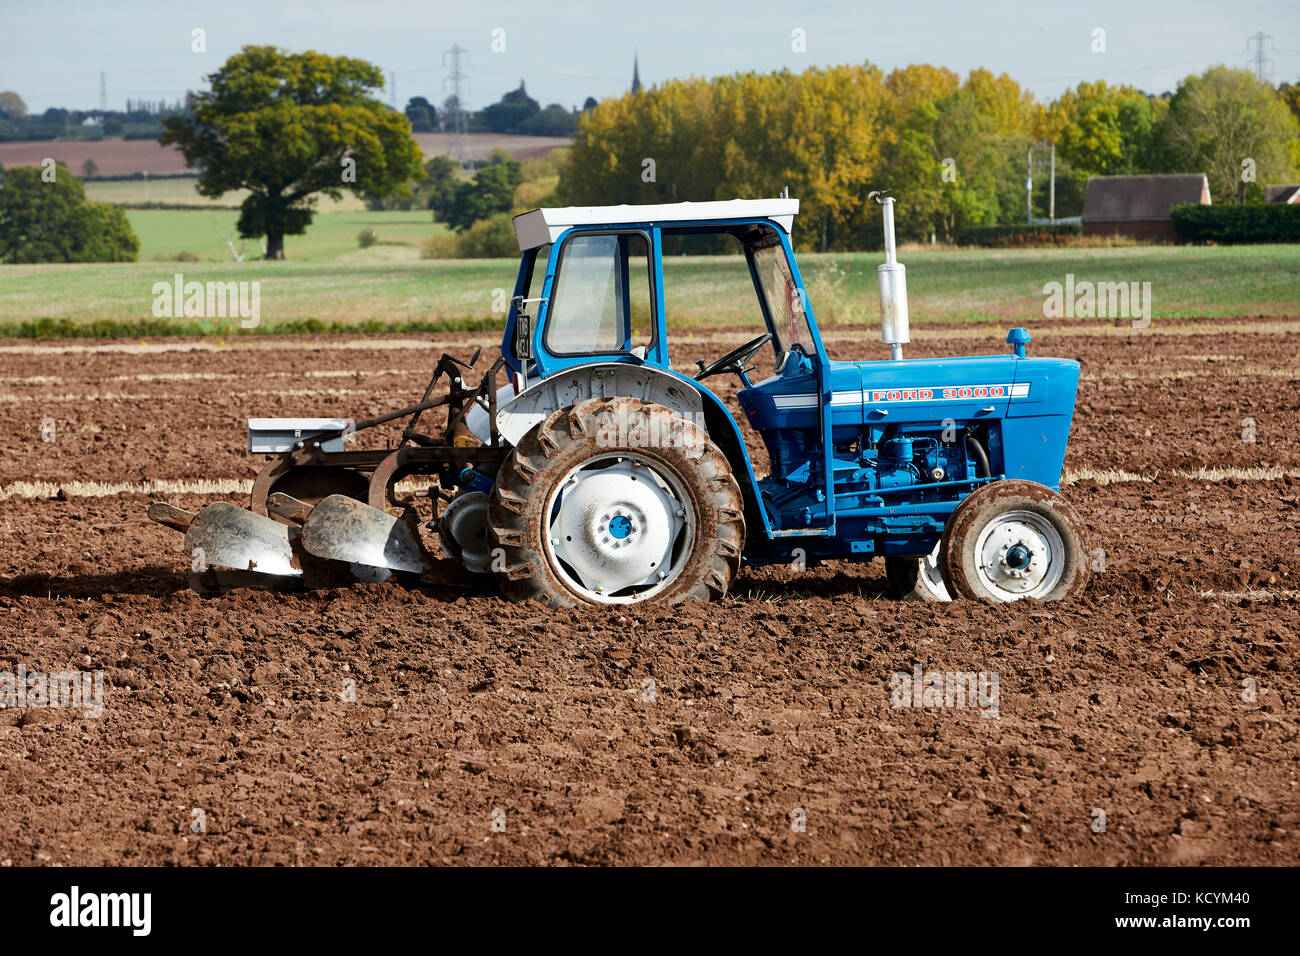 Ford 3000 Tractor Ploughing Stubble Field UK - Stock Image